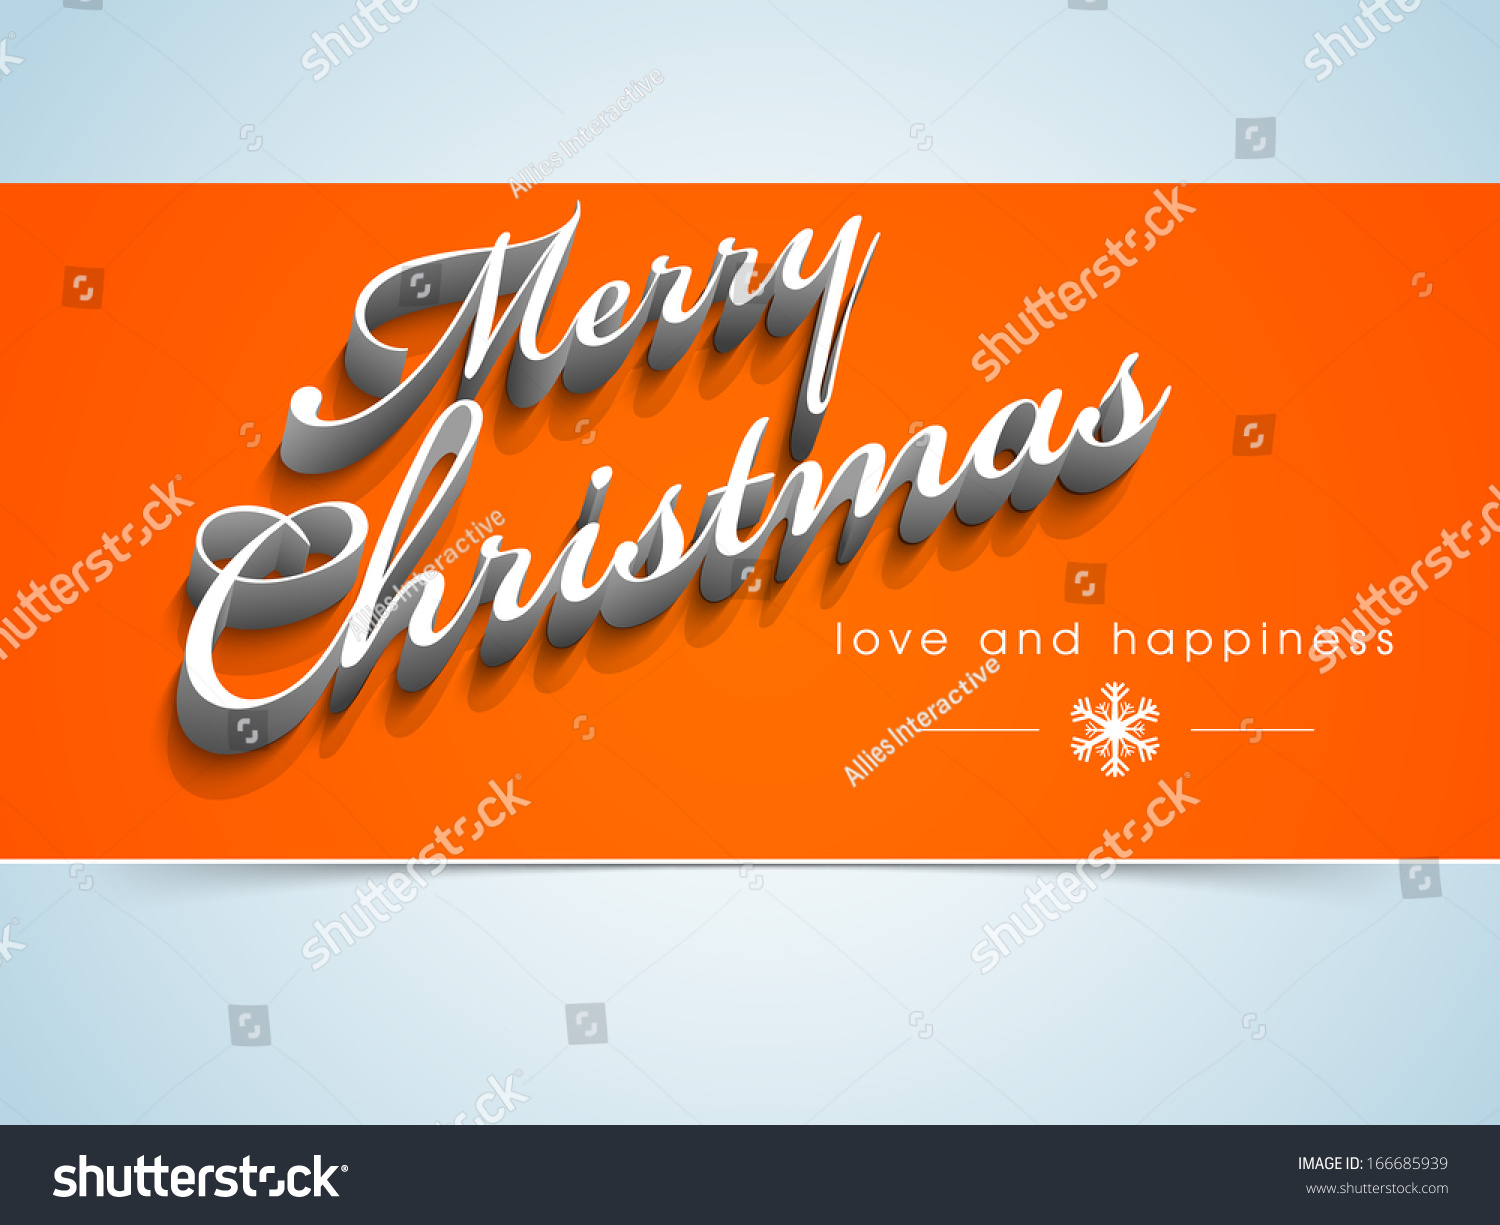 Merry christmas celebration greeting card invitation stock vector merry christmas celebration greeting card or invitation card with stylish text on orange and blue background kristyandbryce Image collections